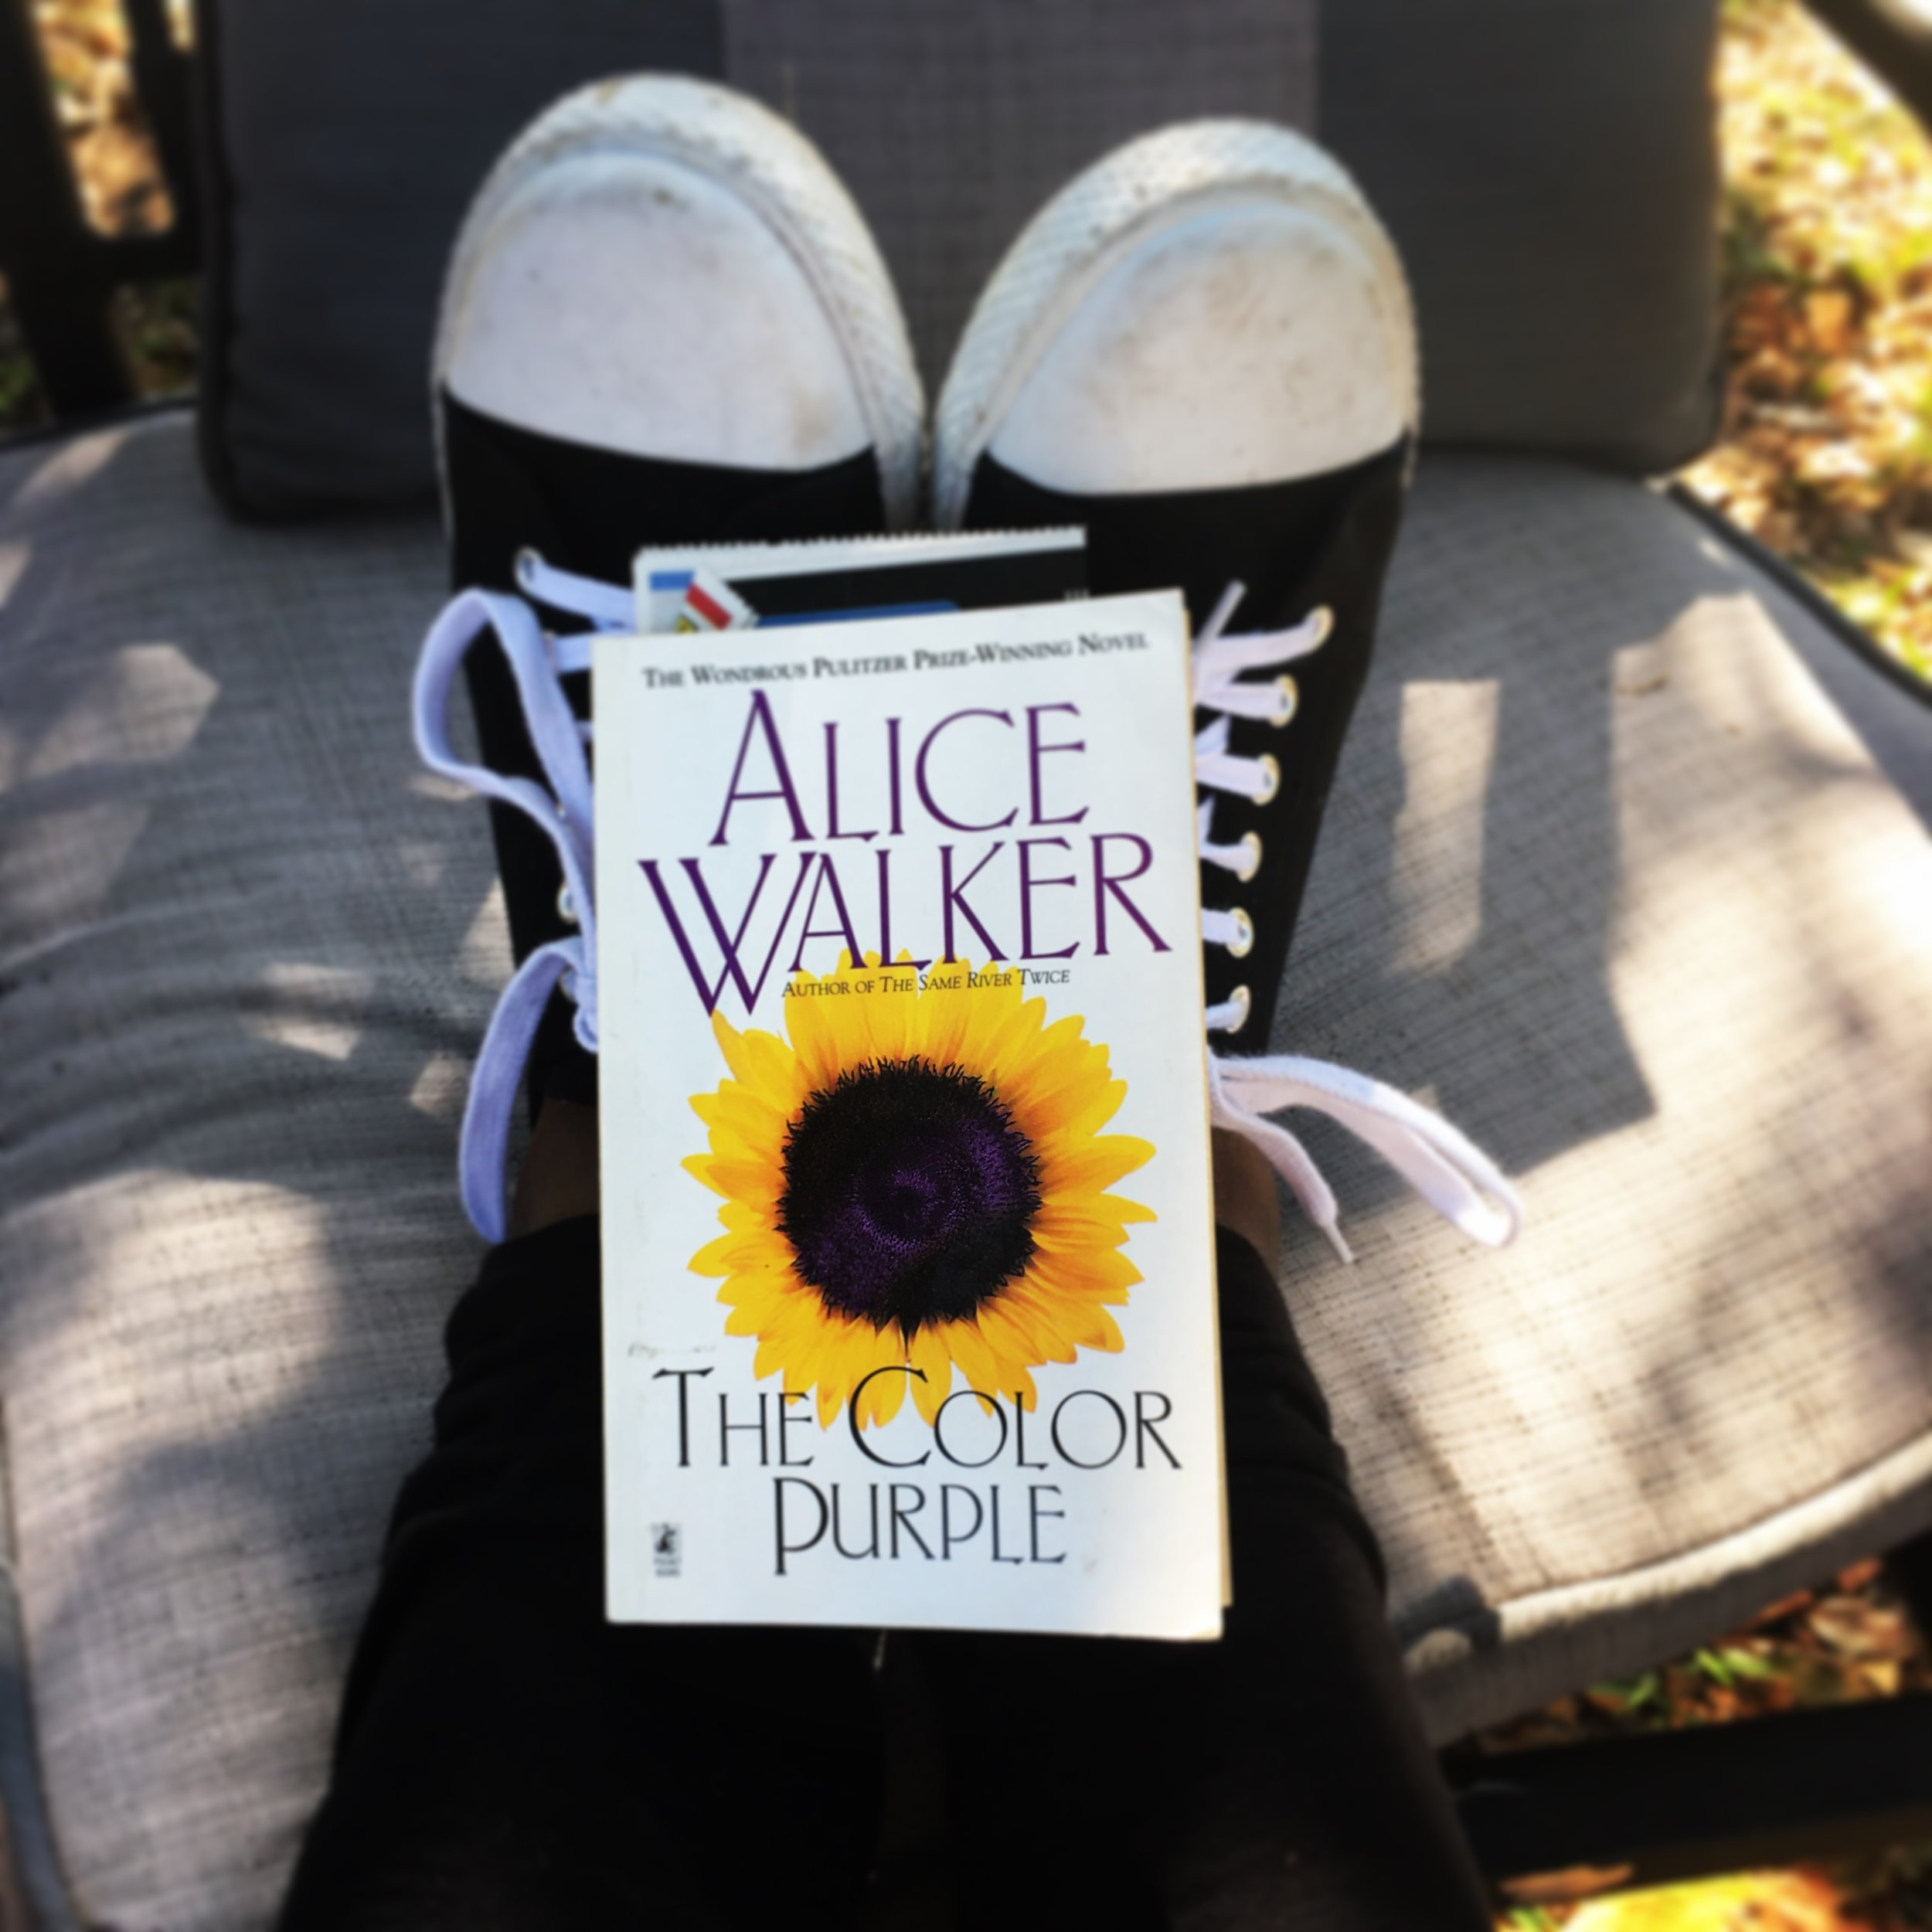 The Color Purple Book Cover Photographed by Black & Bookish